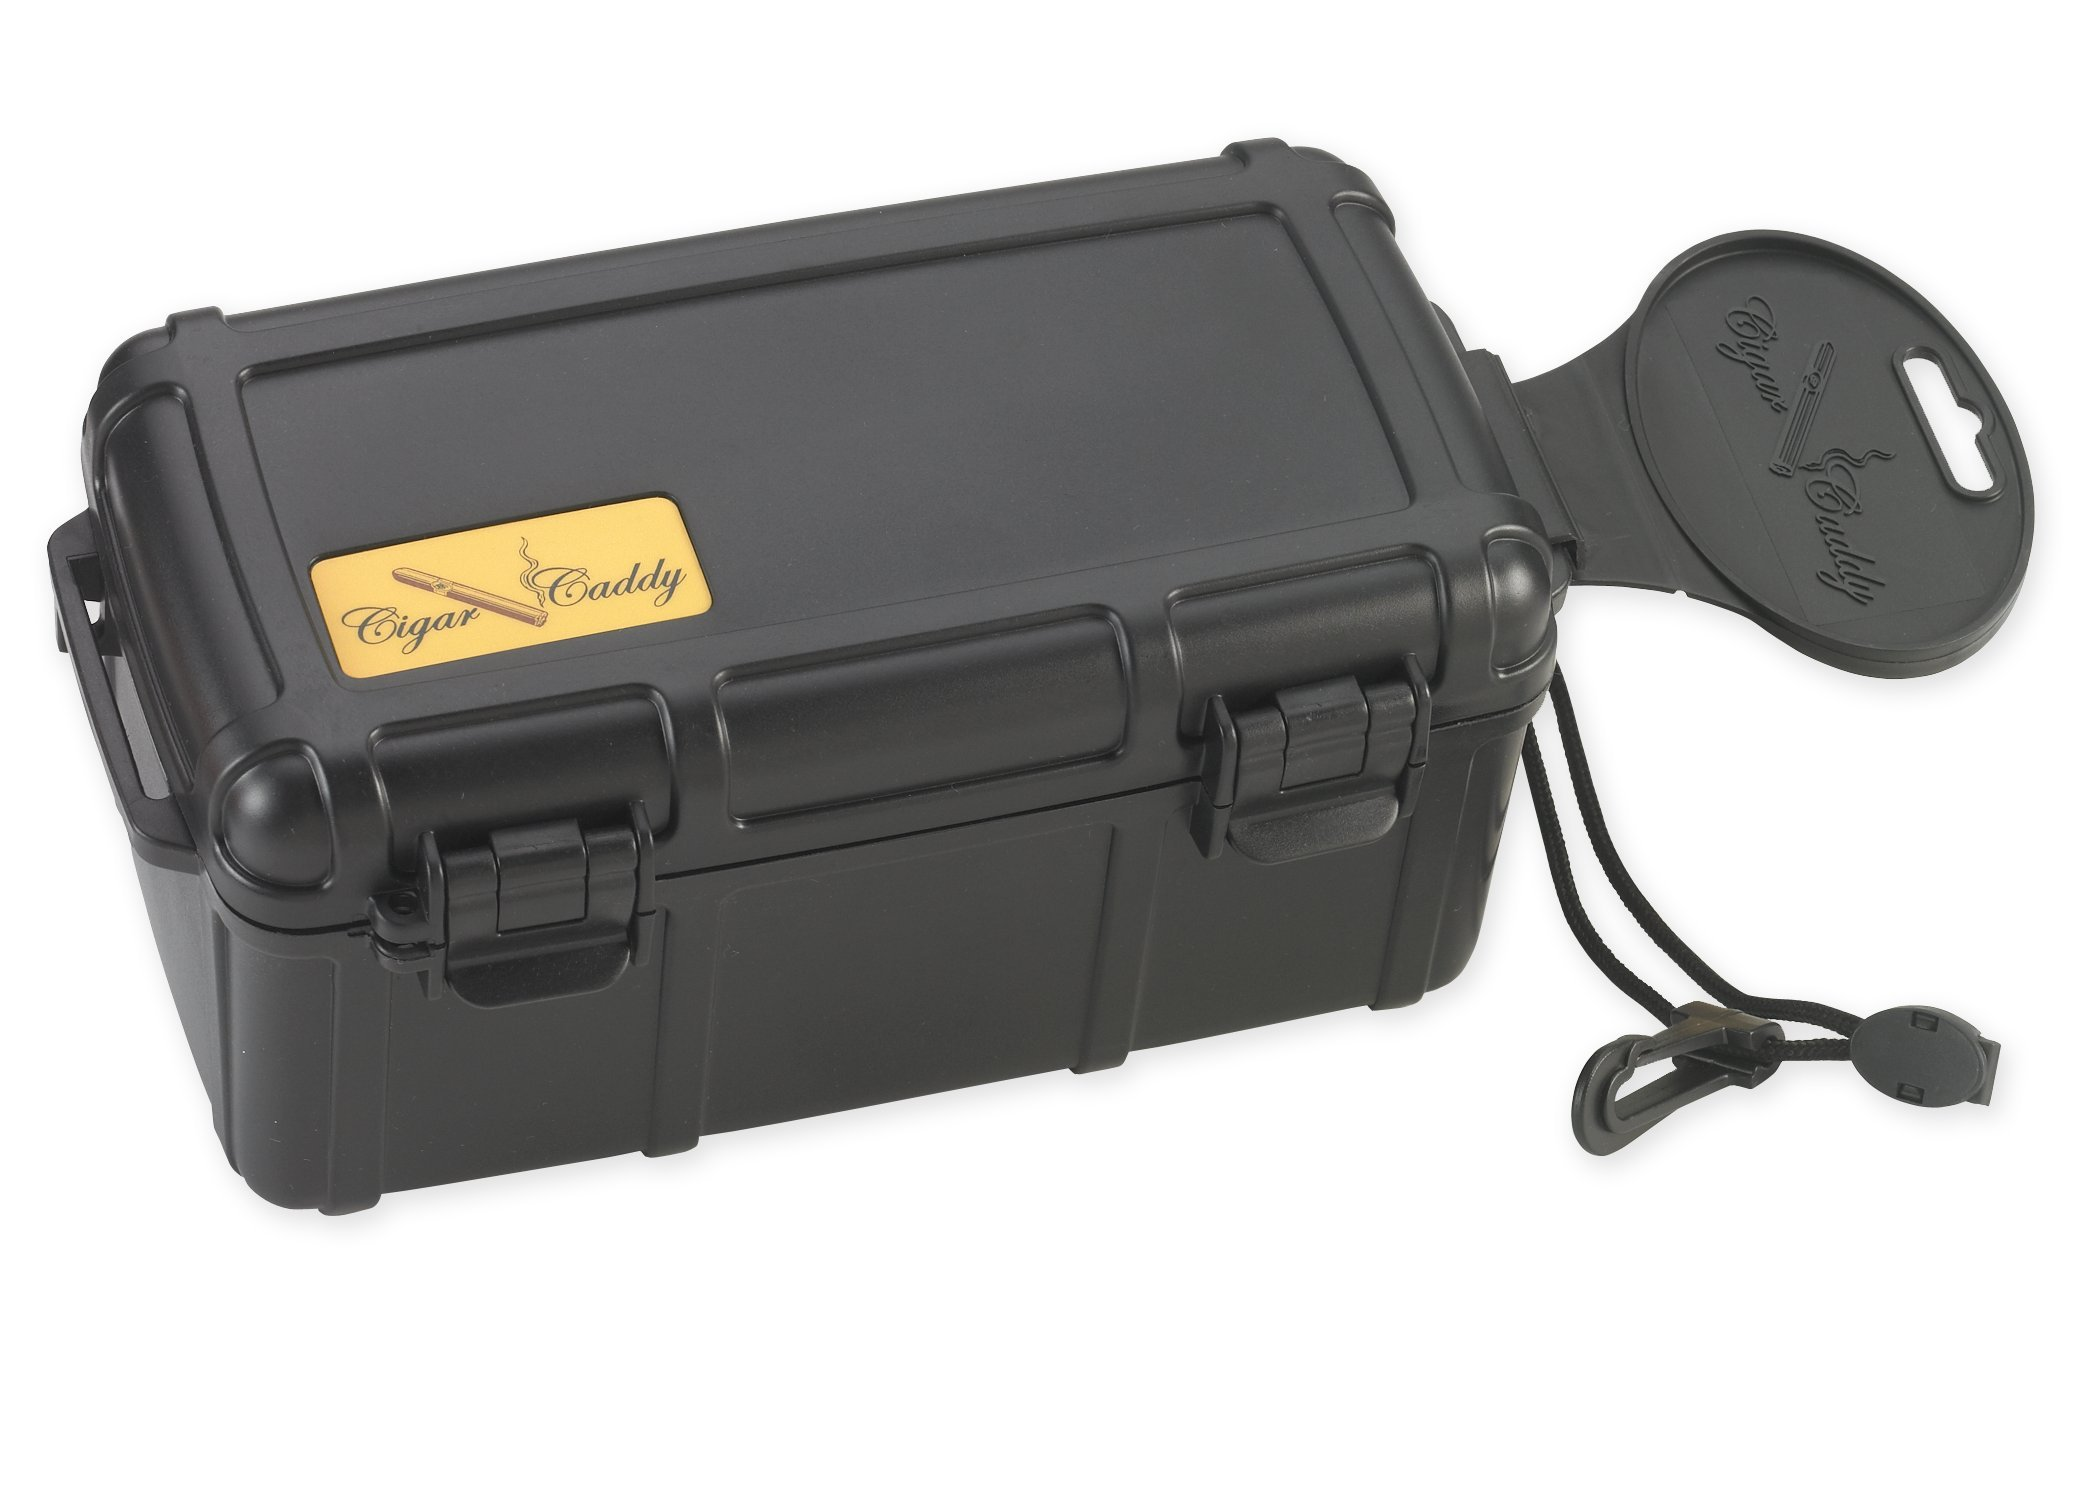 Cigar Caddy 3540 Waterproof Travel Cigar Humidor for 15 Cigars, with One Humidifier Disc Inside, Black Matte